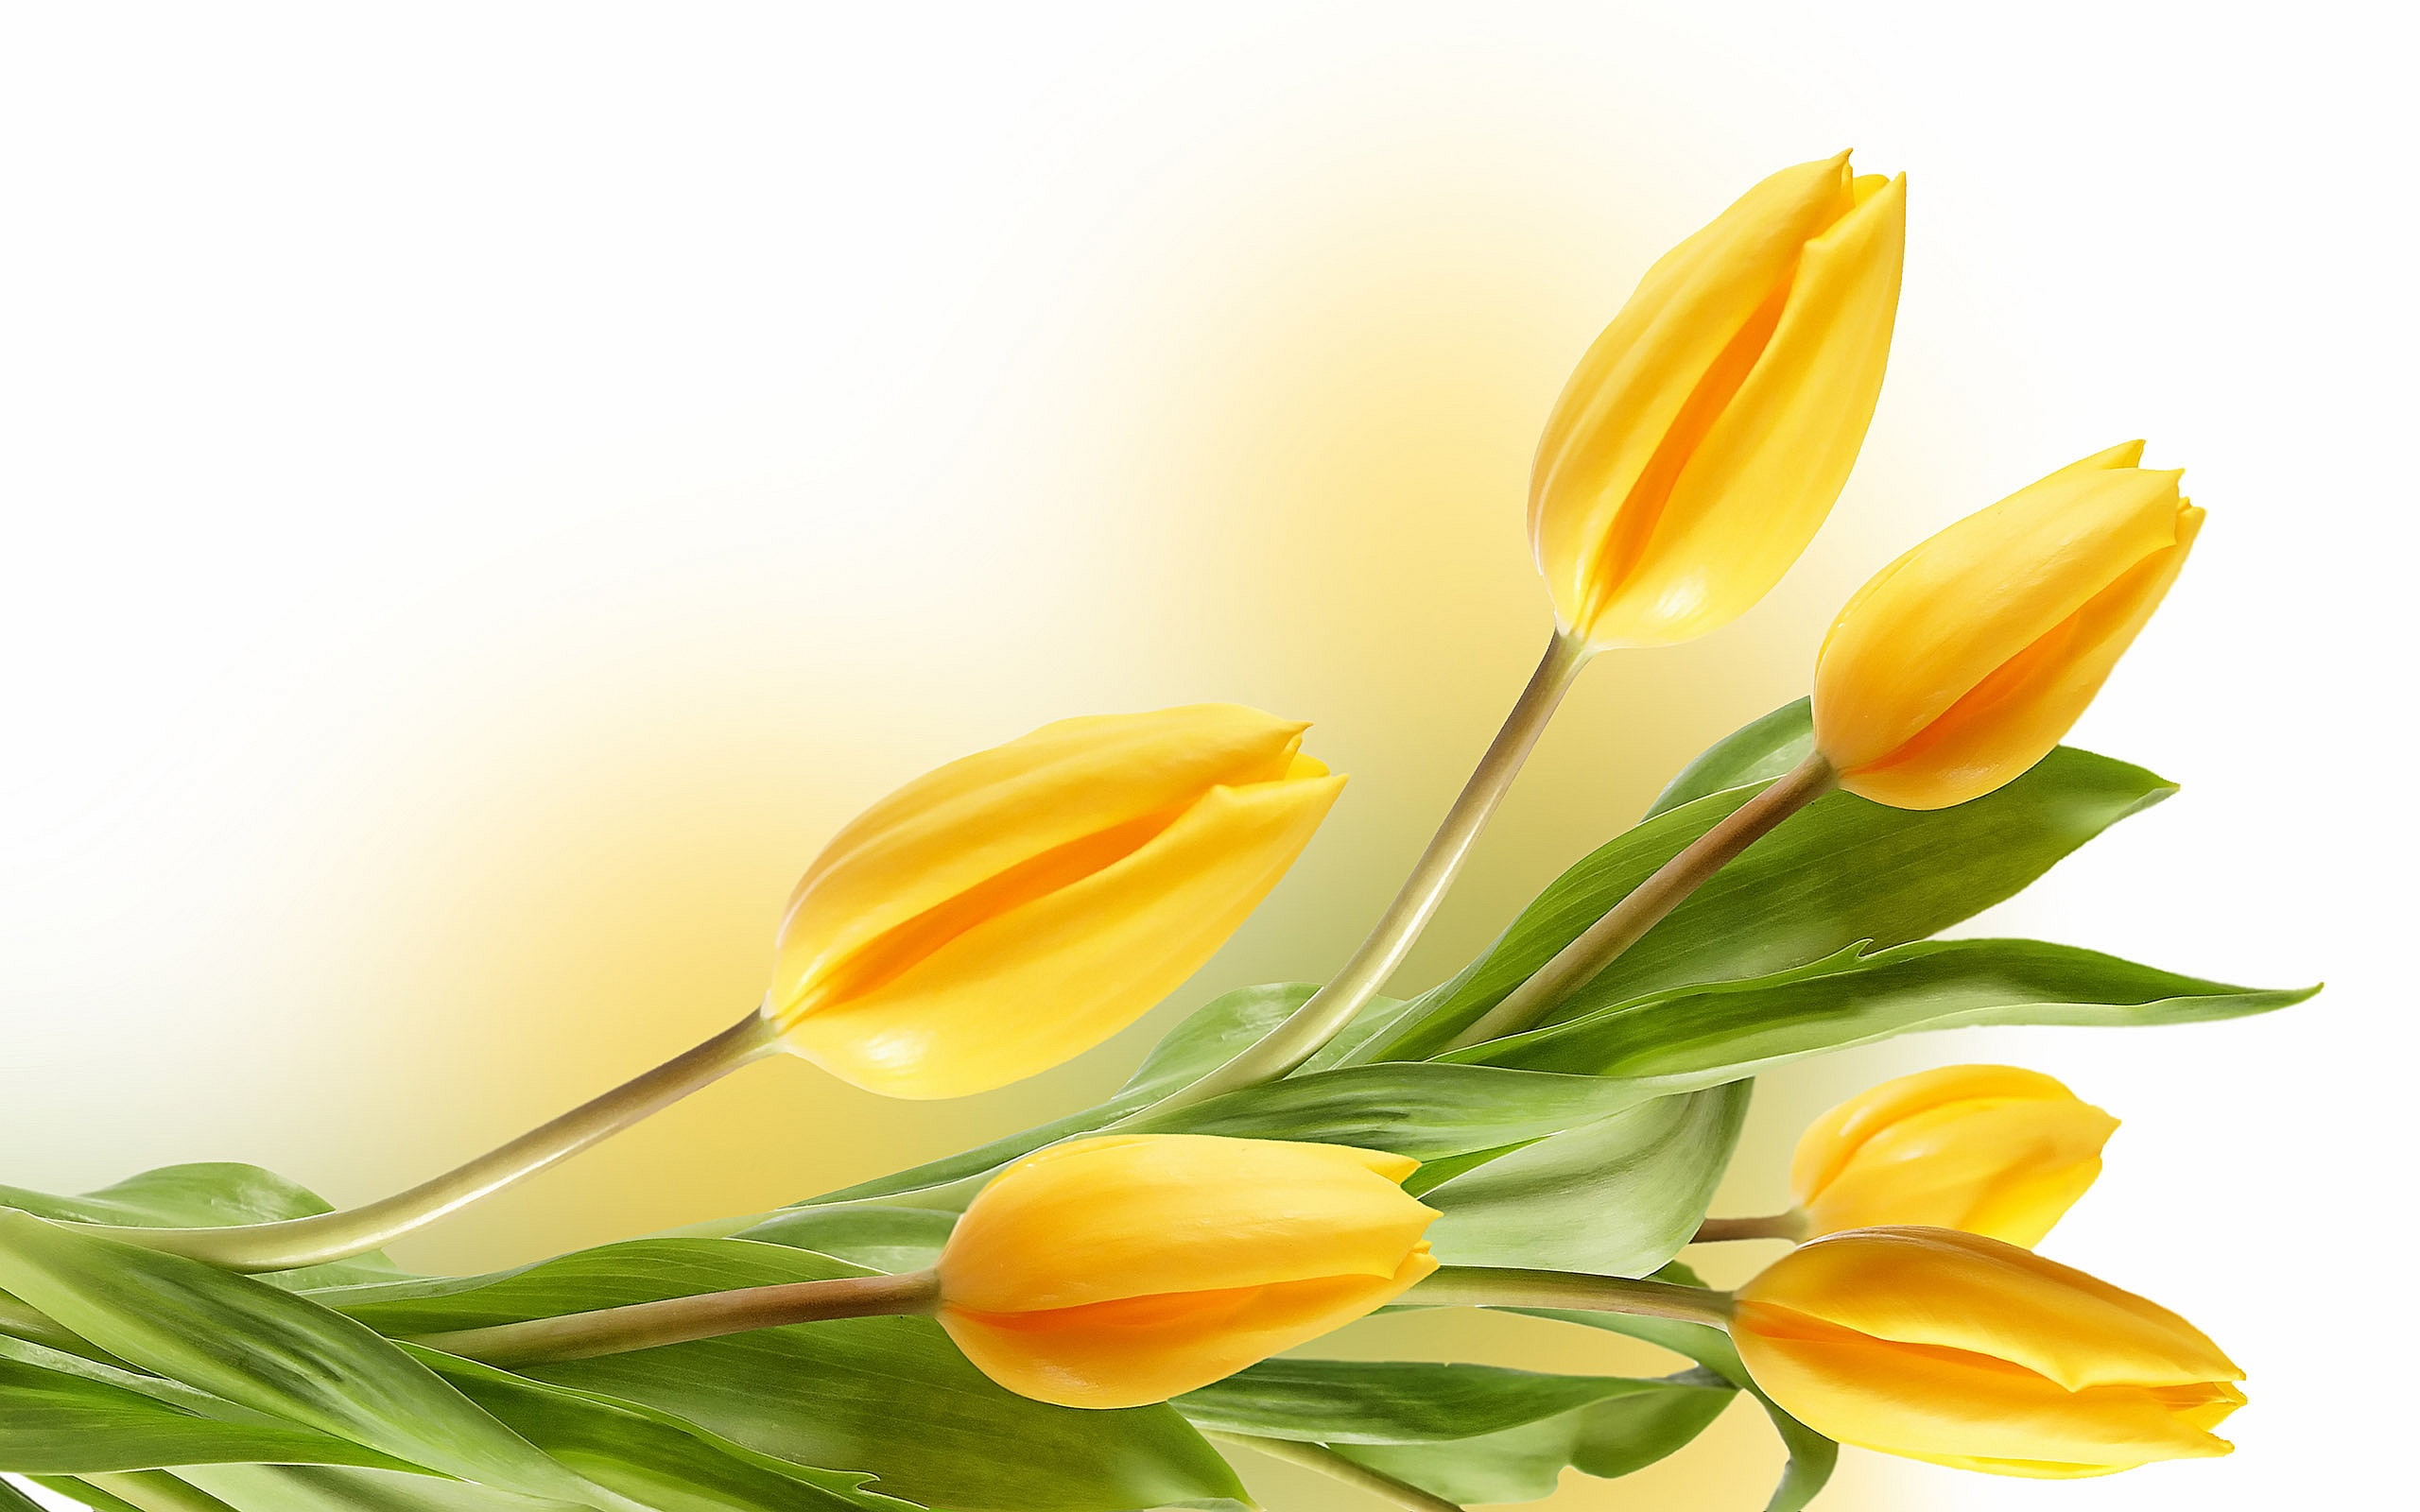 Description: The Wallpaper above is Tulips Yellow Wallpaper in Resolution 2560x1600. Choose your Resolution and Download Tulips Yellow Wallpaper